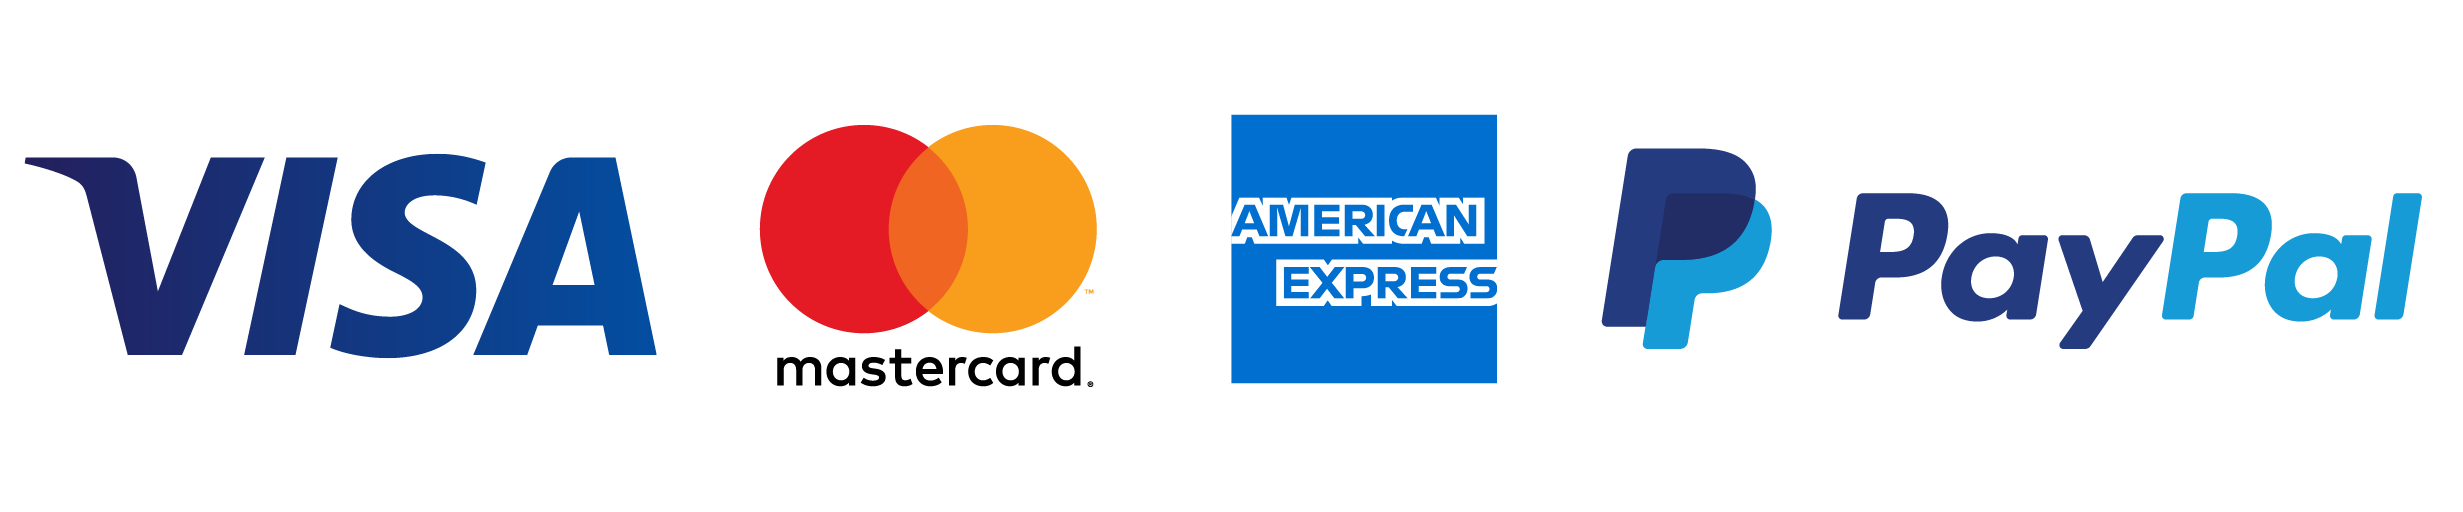 We accept VISA, Mastercard, American Express via PayPal